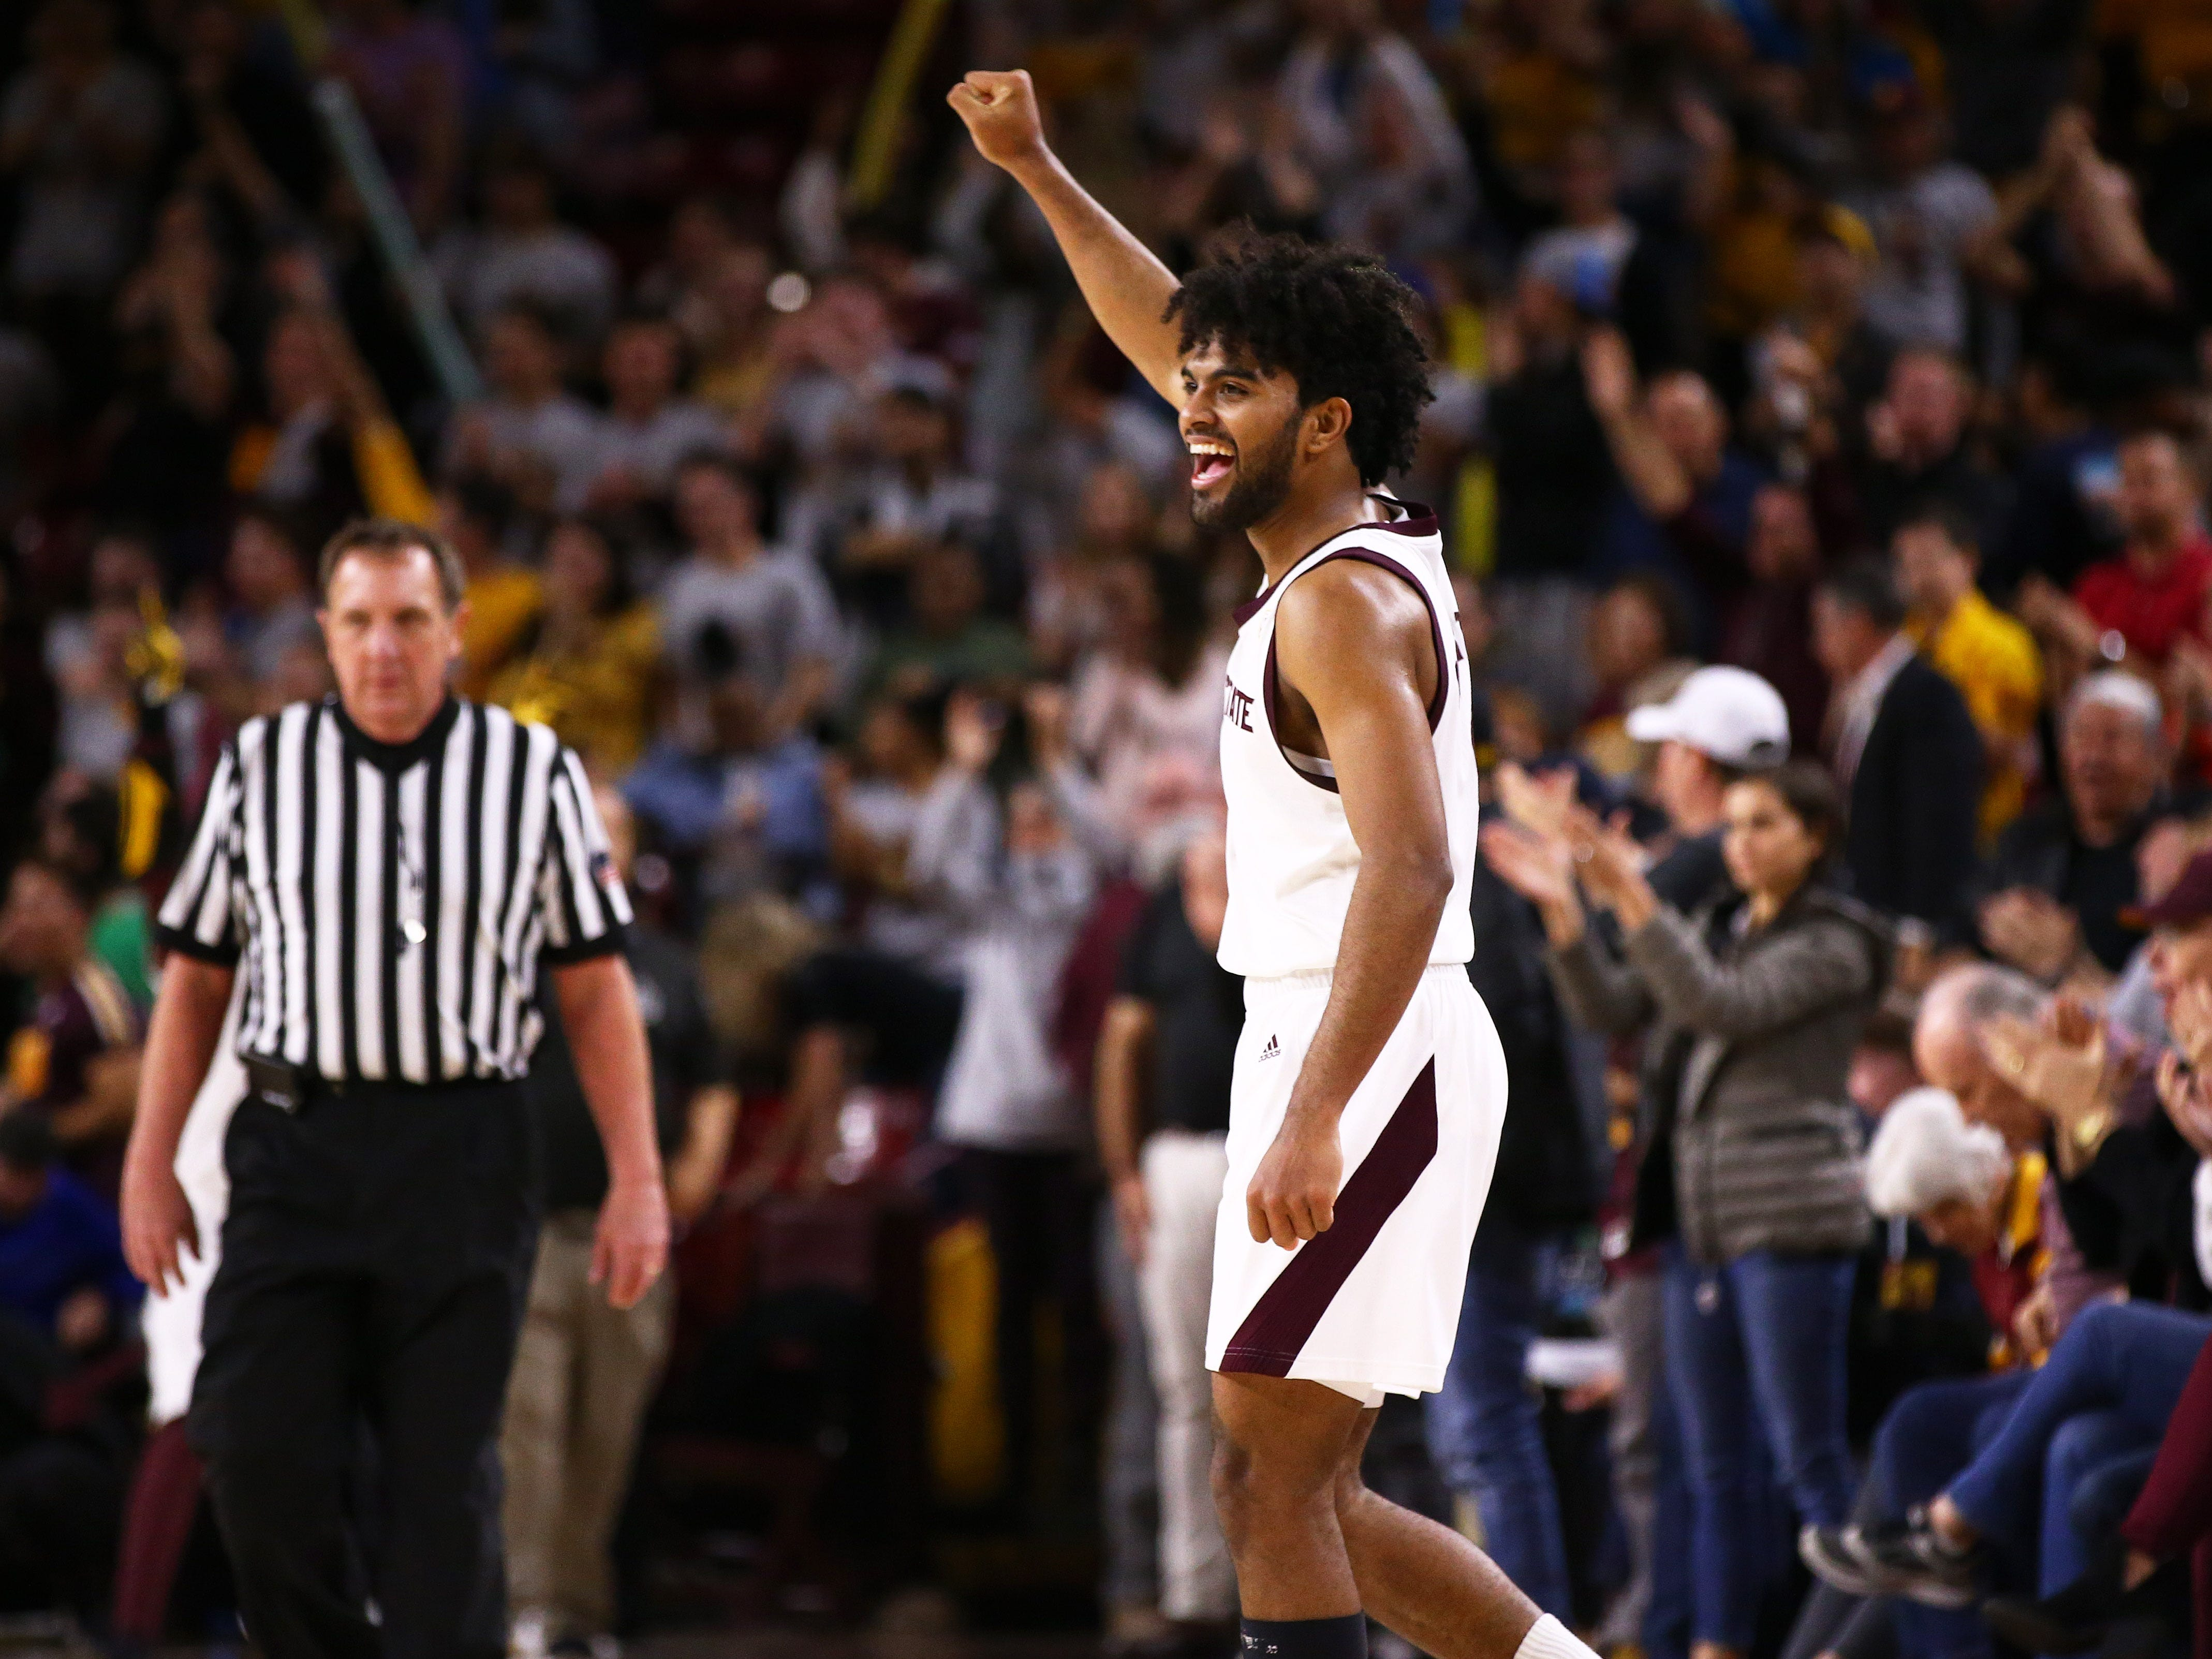 Arizona State Sun Devils guard Remy Martin celebrates their win over the Oregon State Beavers on Jan. 17 at Wells Fargo Arena in Tempe.